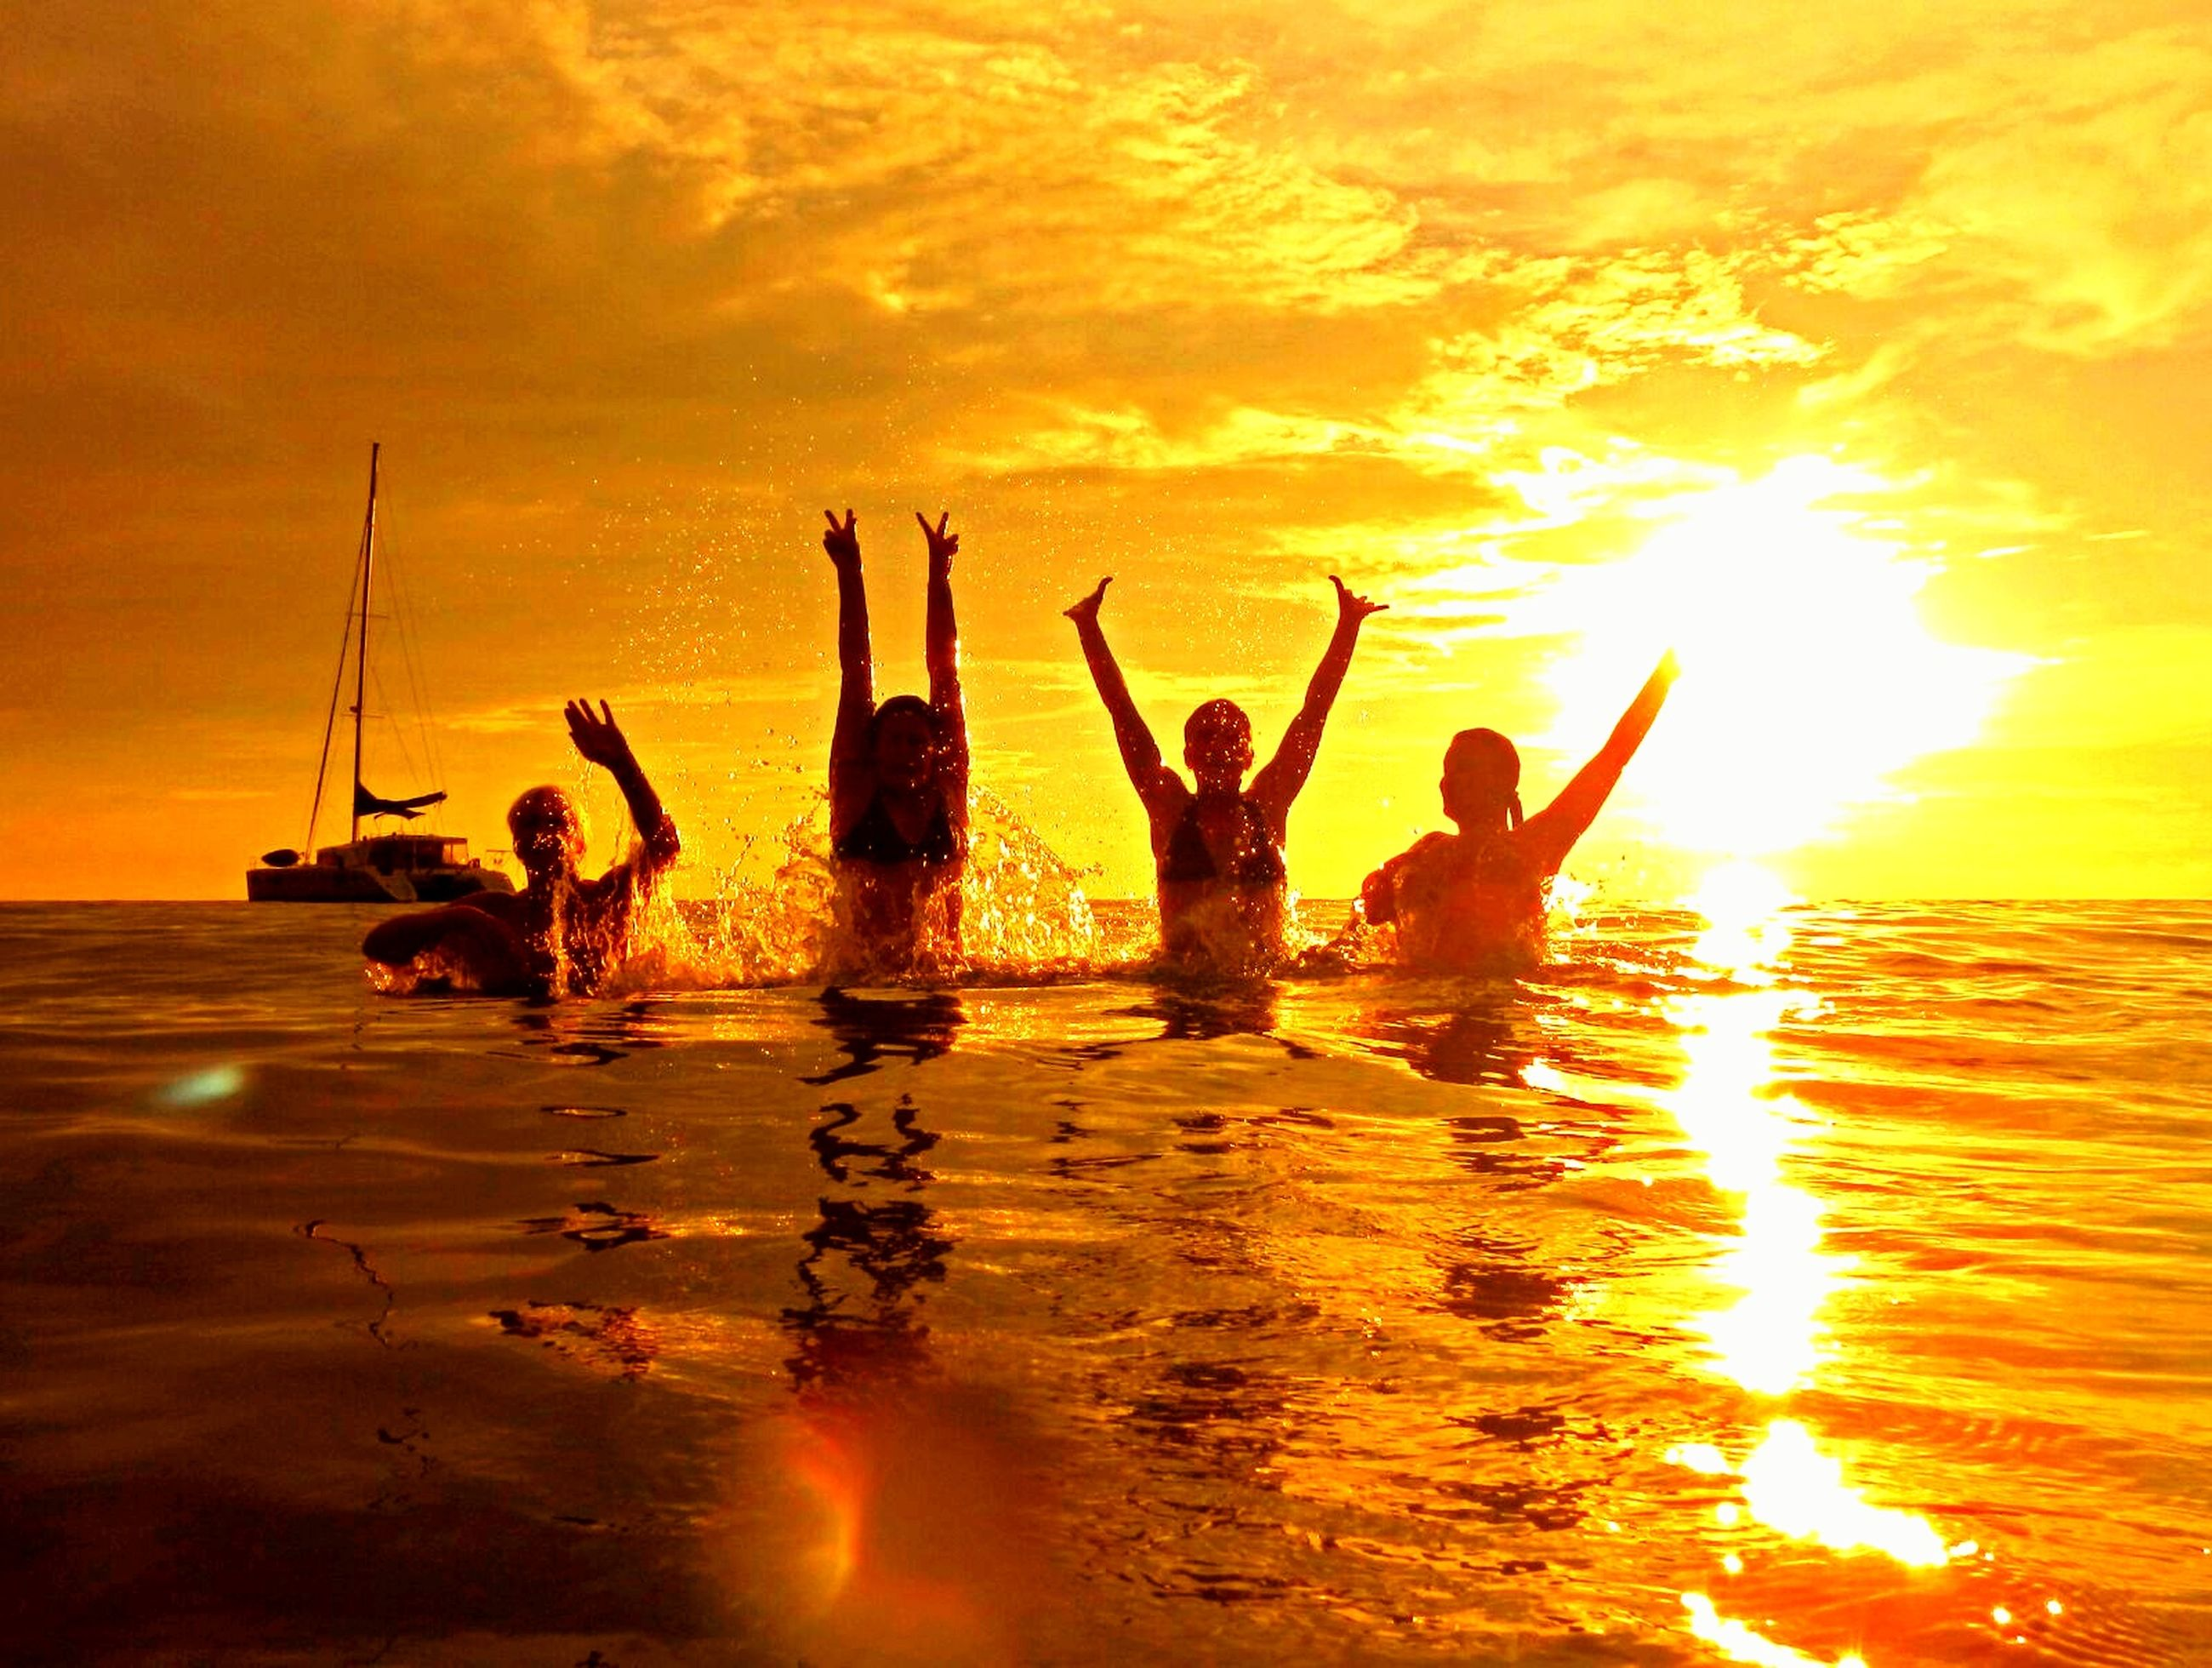 sunset, friendship, fun, water, summer, happiness, beach, dusk, sea, vacations, party - social event, arms raised, silhouette, dramatic sky, group of people, women, sun, men, outdoors, people, jumping, teamwork, togetherness, human arm, adult, sky, human body part, nature, human hand